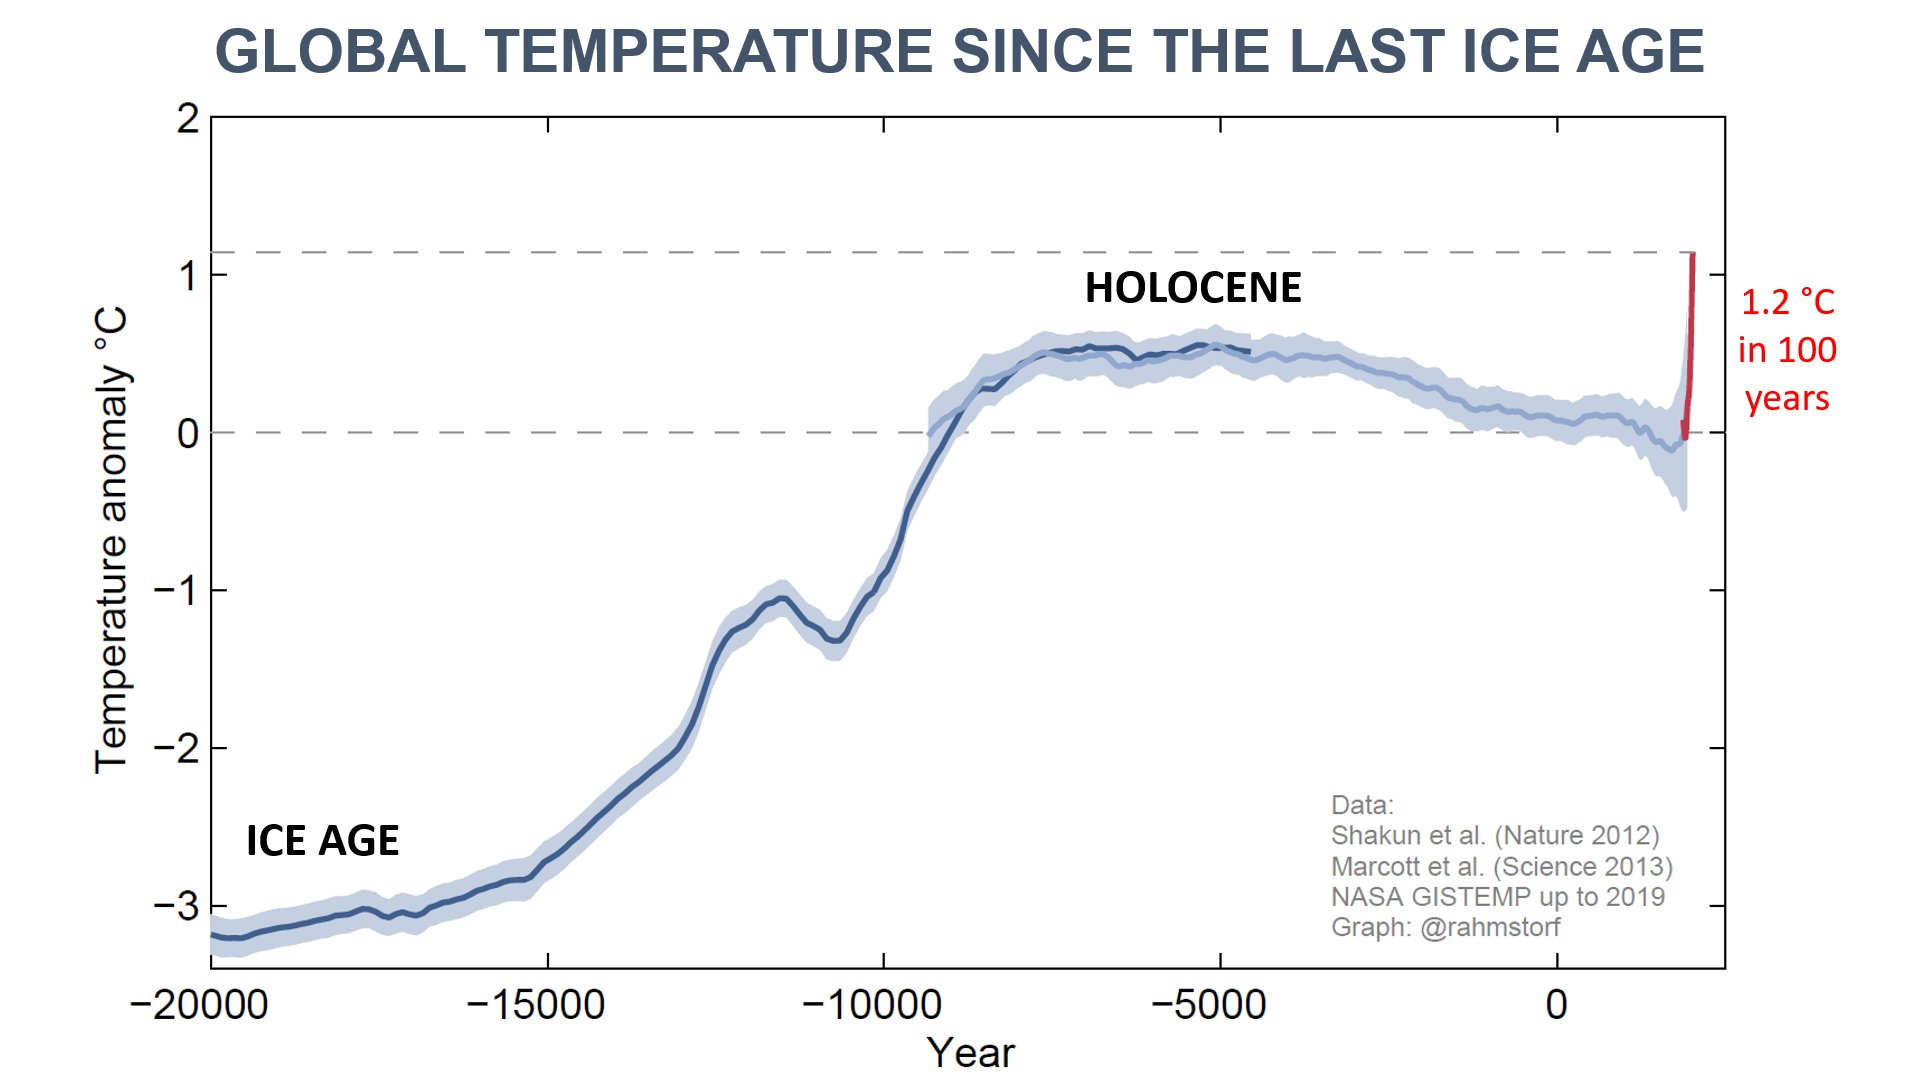 Global Temperature Since the Last Ice Age  In just 100 years, fossil fuel use has more than undone 5000 years of natural cooling. It's hotter now than any time in the history of human civilisation. We are catapulting ourselves out of the Holocene into uncharted territory. Current life on Earth is not adapted to this.  from Stefan Rahmstorf twit 10:25 PM Jan 24, 2020. [https://publish.twitter.com/?query=https%3A%2F%2Ftwitter.com%2Frahmstorf%2Fstatus%2F1220699044181368838&widget=Tweet] access on 29, Oct. 2020.